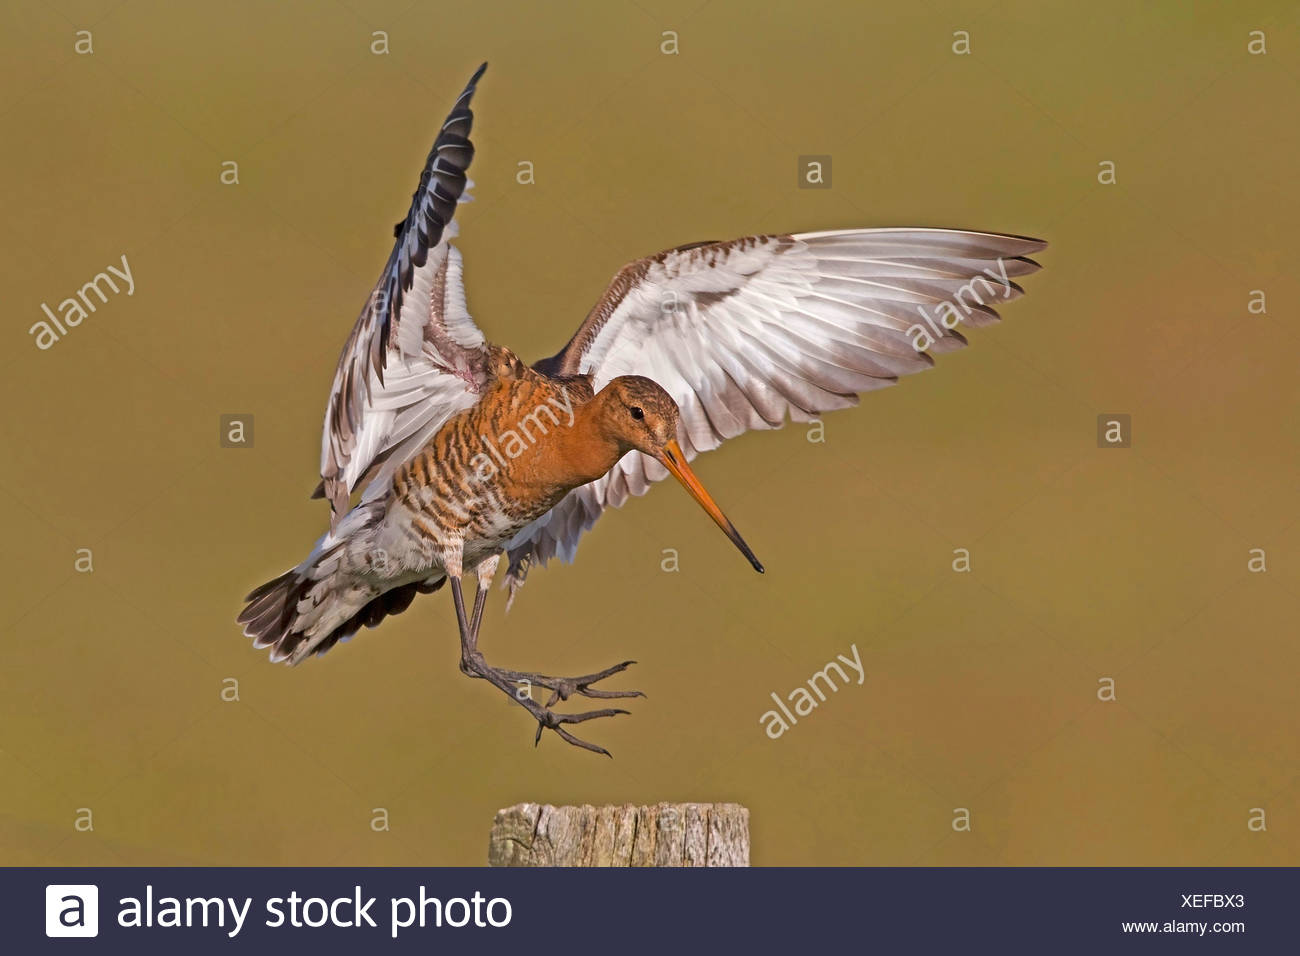 black-tailed godwit (Limosa limosa), landing on a pasture post, Netherlands - Stock Image